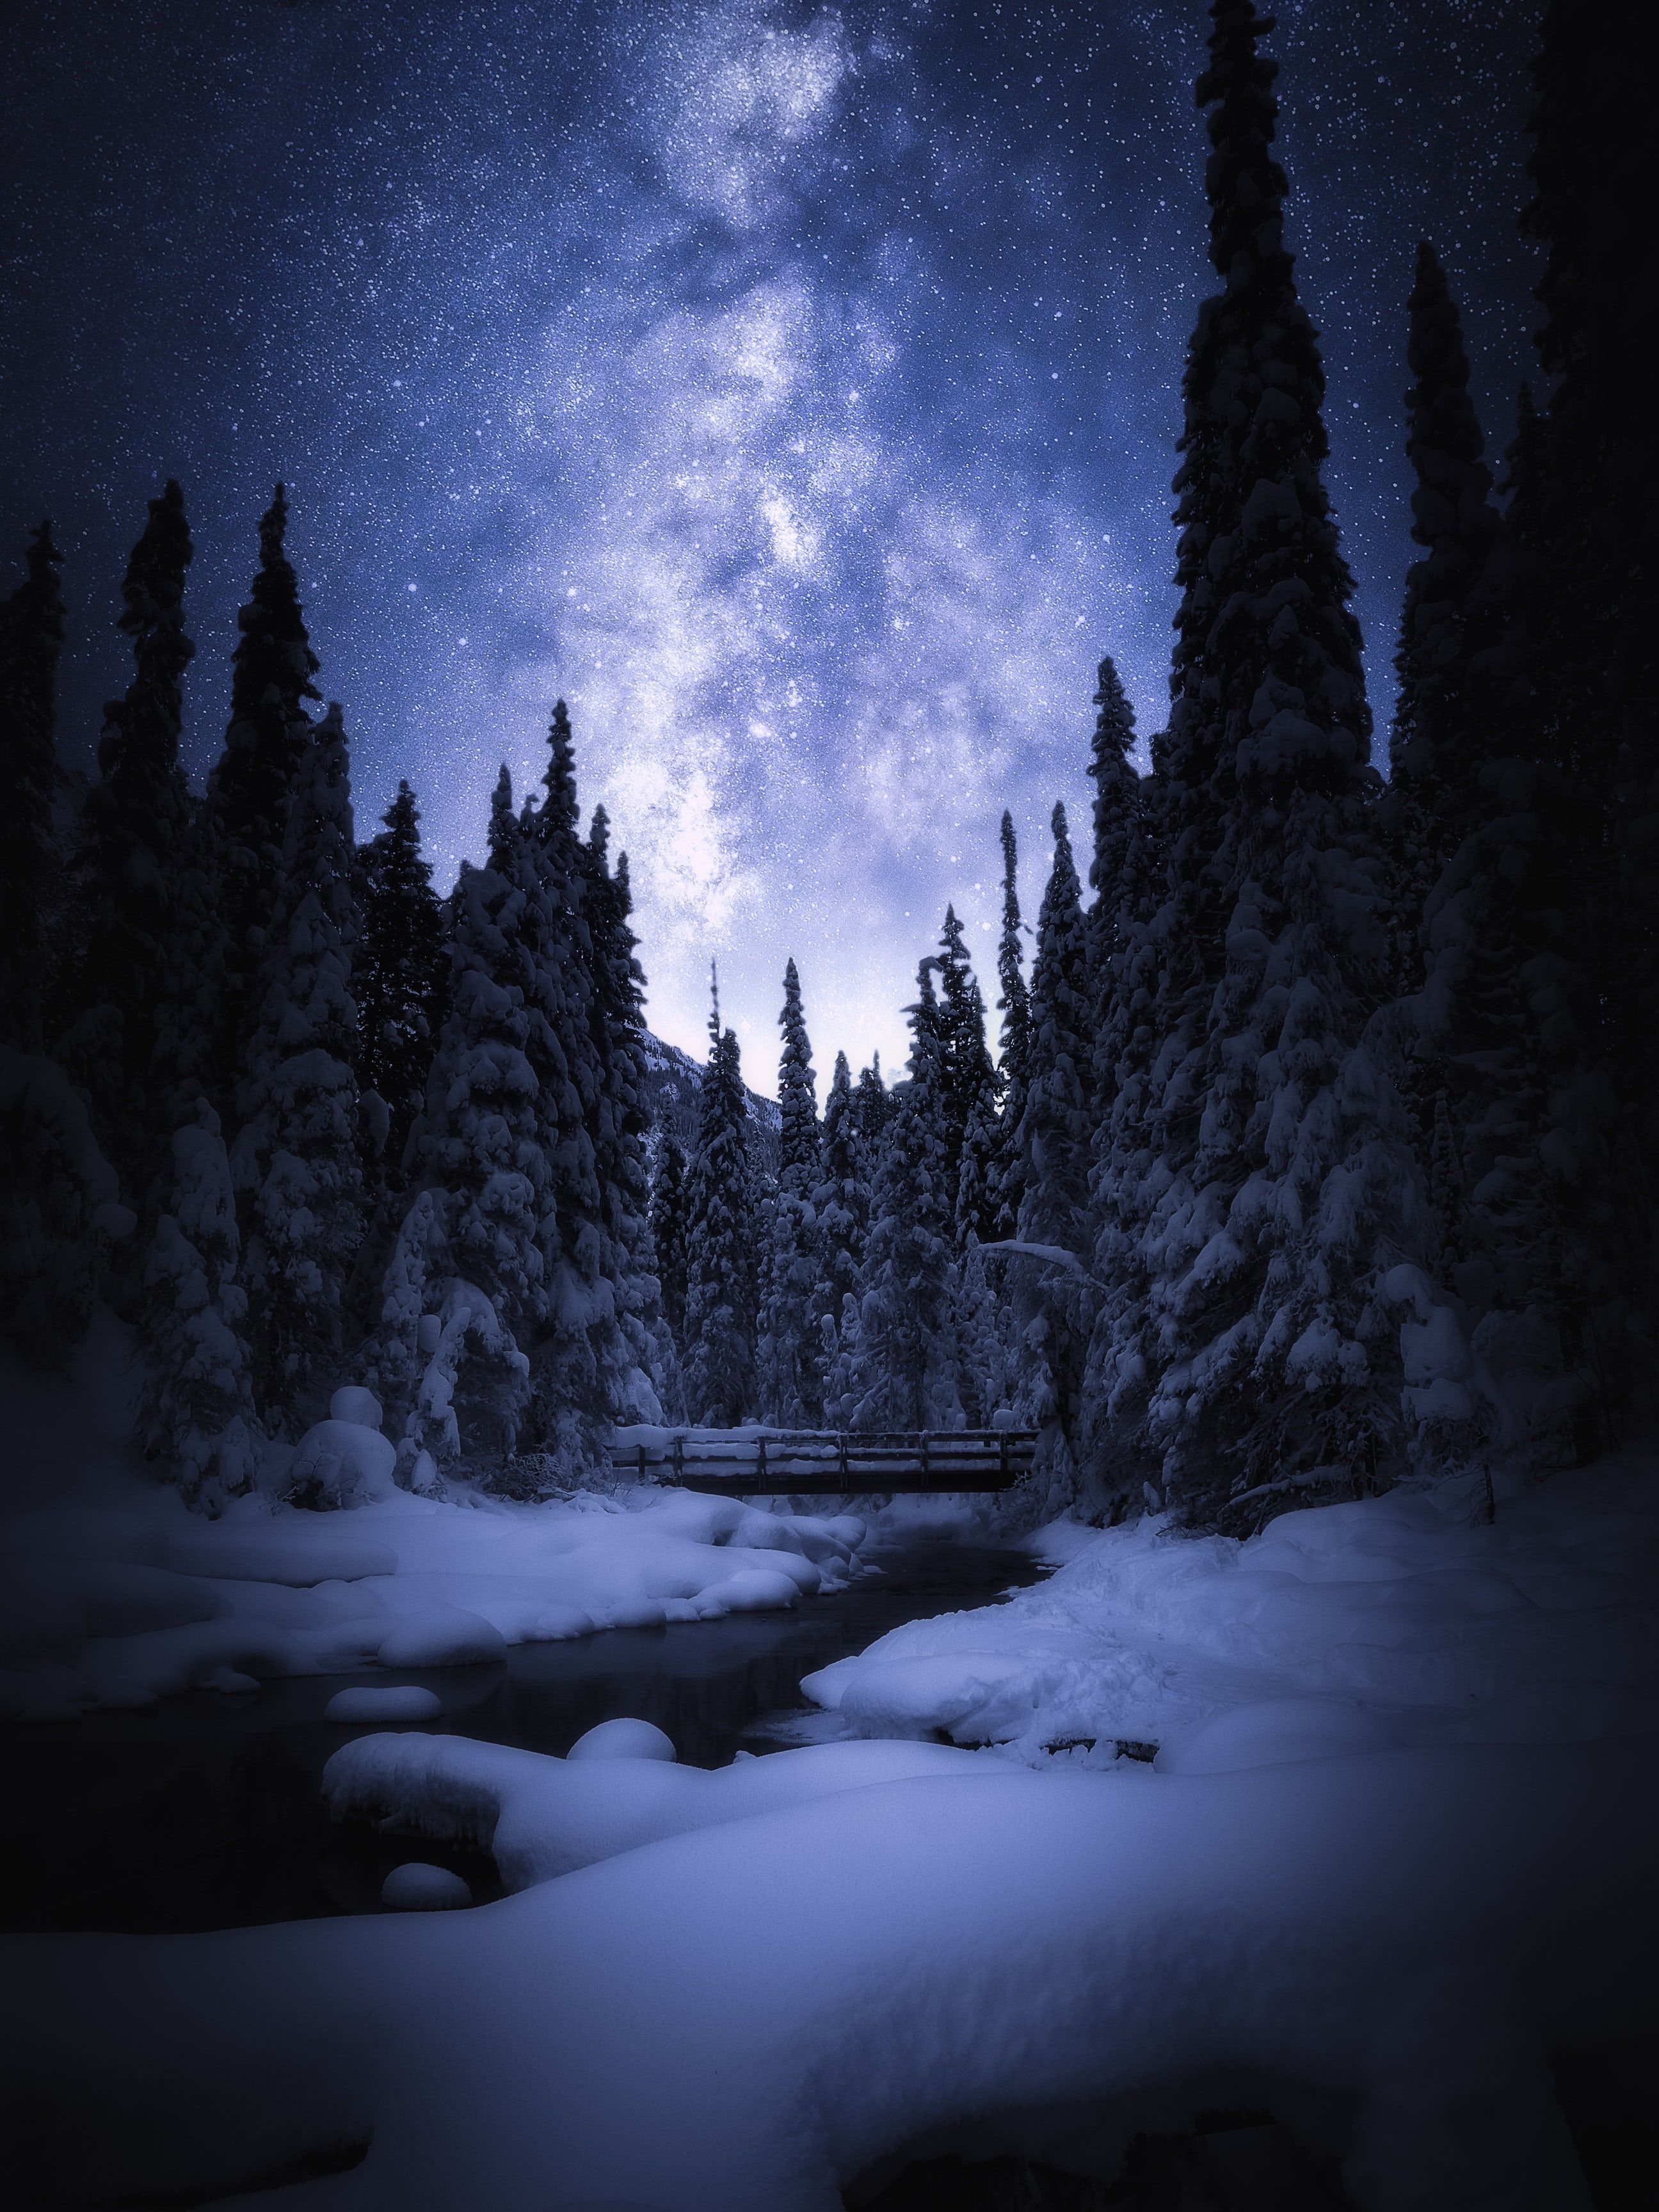 Snow Covered Pine Trees During Nighttime Night Landscape Cheap Places To Visit Landscape Poster